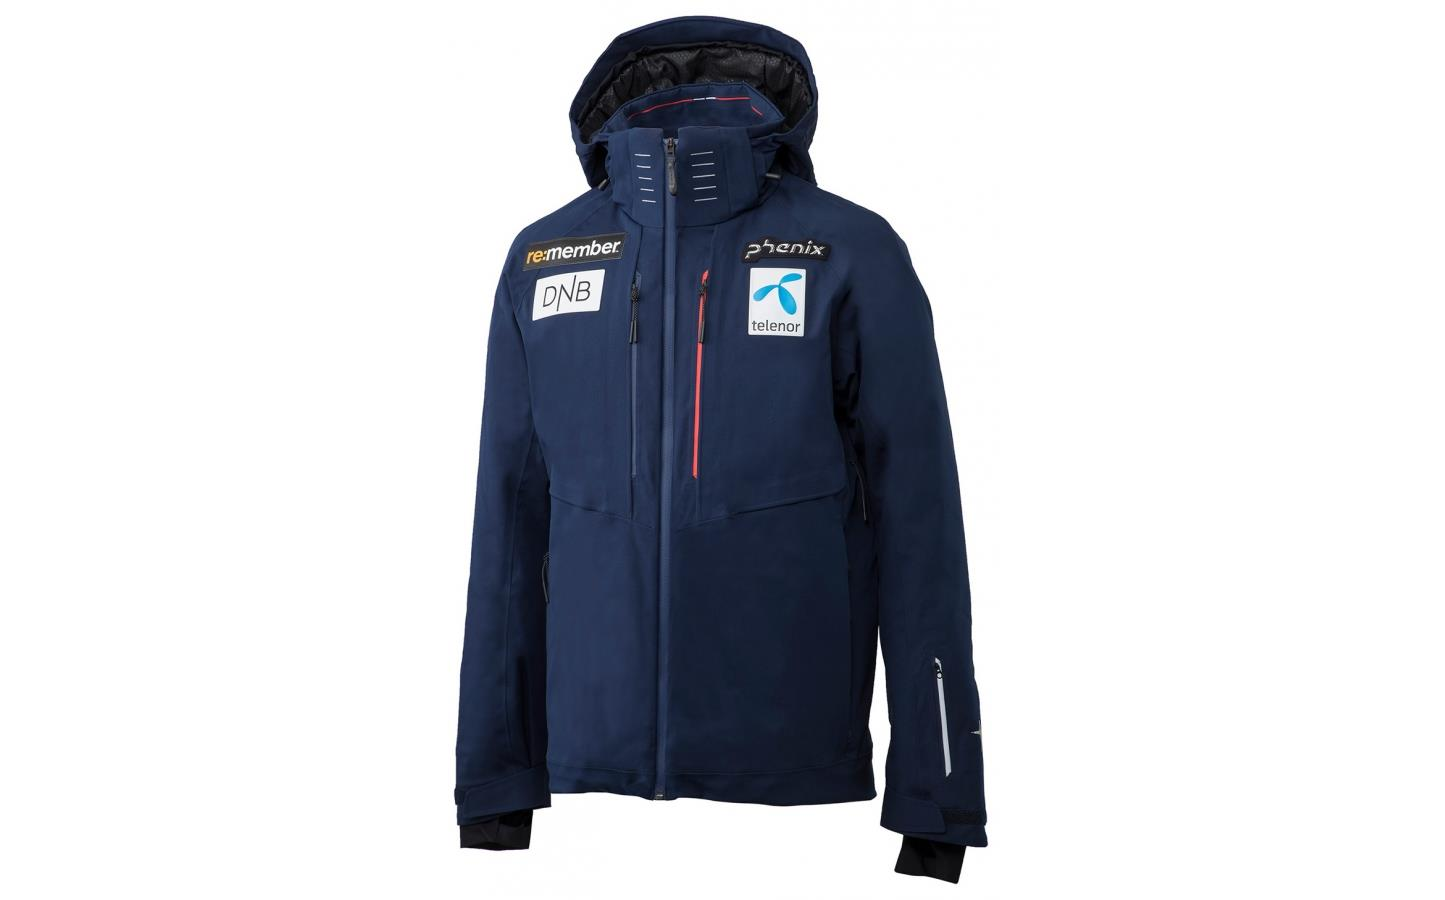 Куртка Phenix Norway Alpine Ski Team Replica OT10 808ebd69f1a